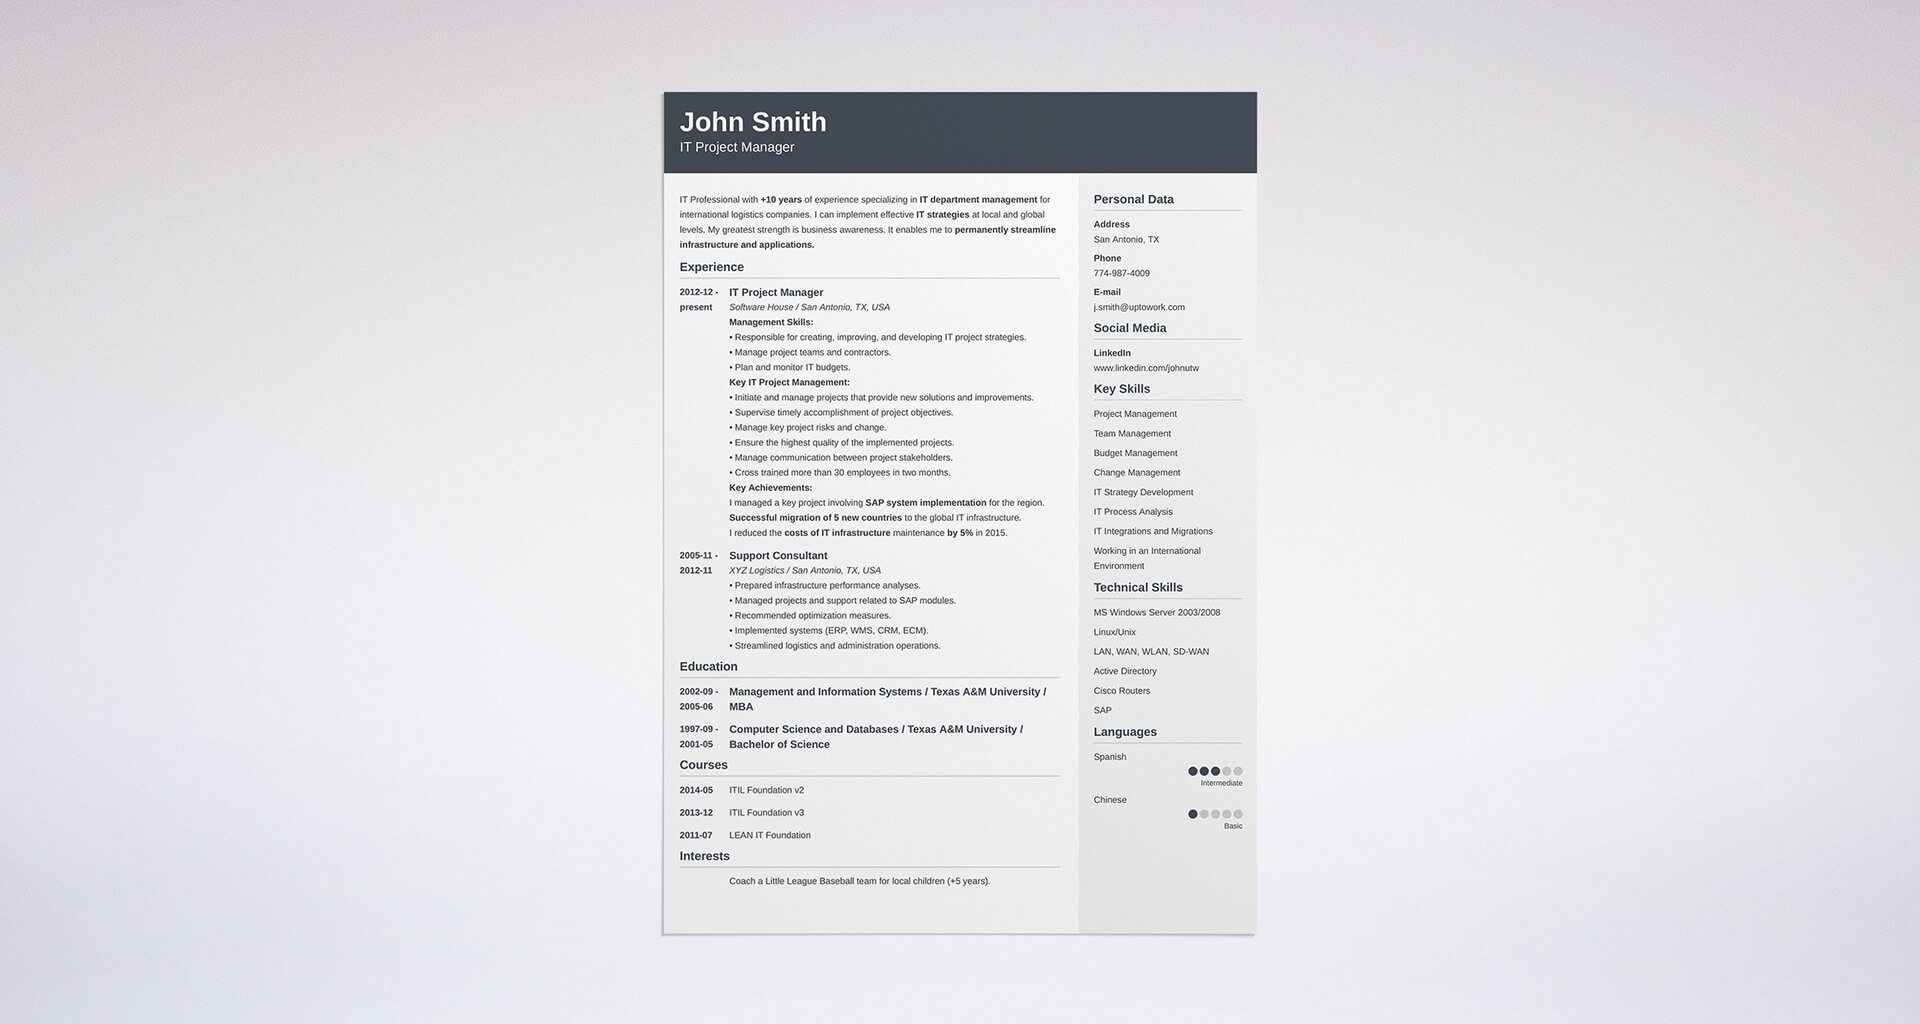 best resume format professional samples strong examples soapui testing points project Resume Strong Resume Examples 2020